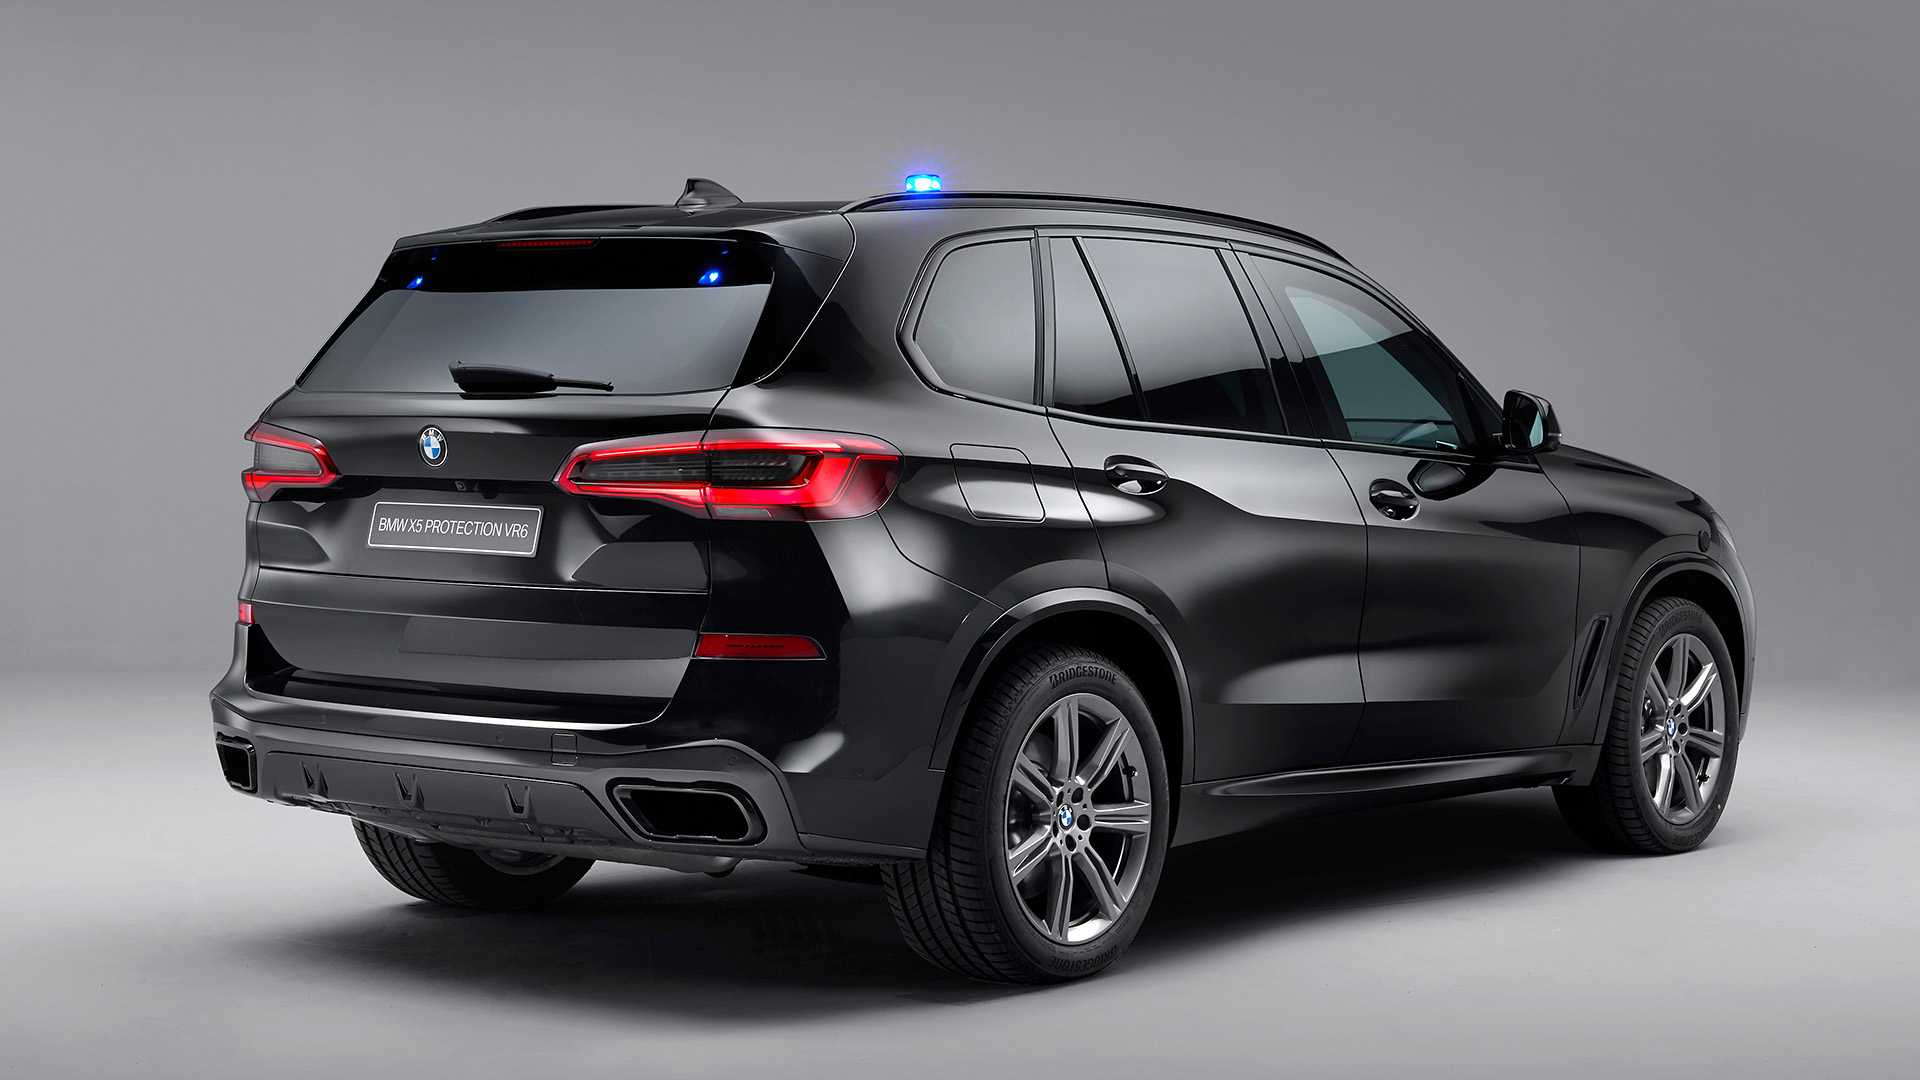 2020 BMW X5 Protection VR6 (Armored Vehicle) Rear Three-Quarter Wallpapers (8)